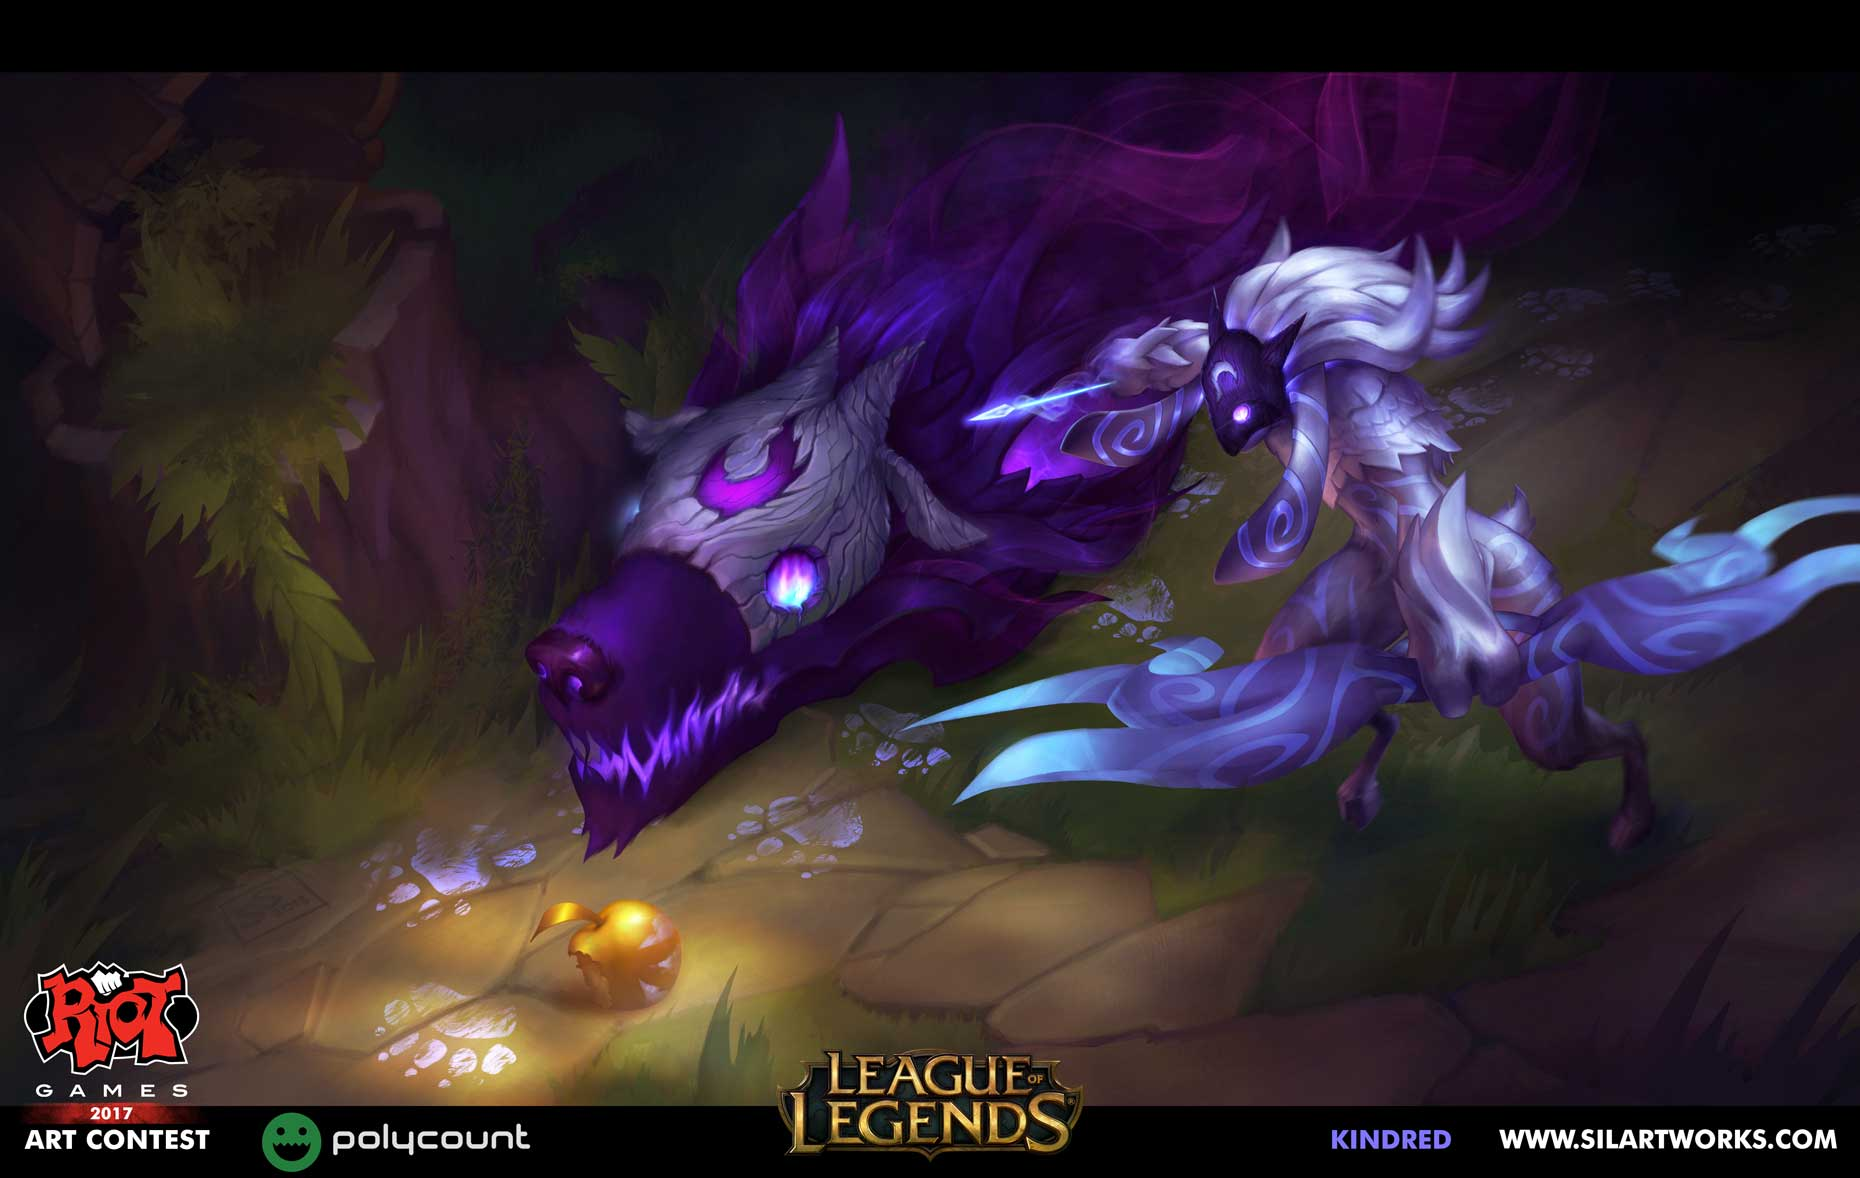 Kindred league of legends by Silartworks